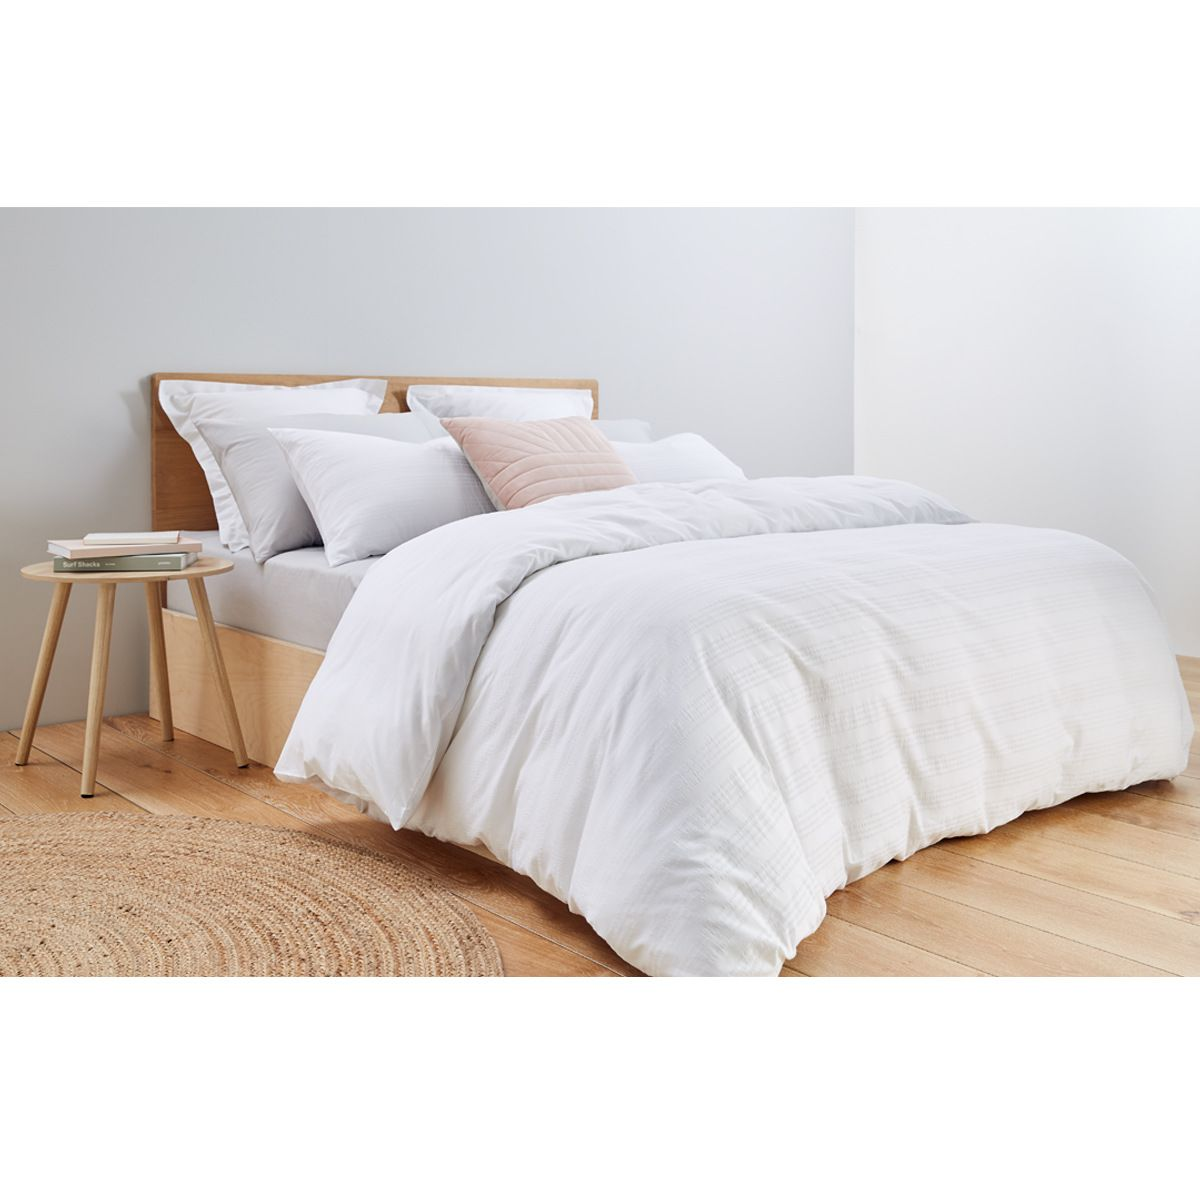 Catherine Seersucker Quilt Cover Set Queen Bed White Kmart